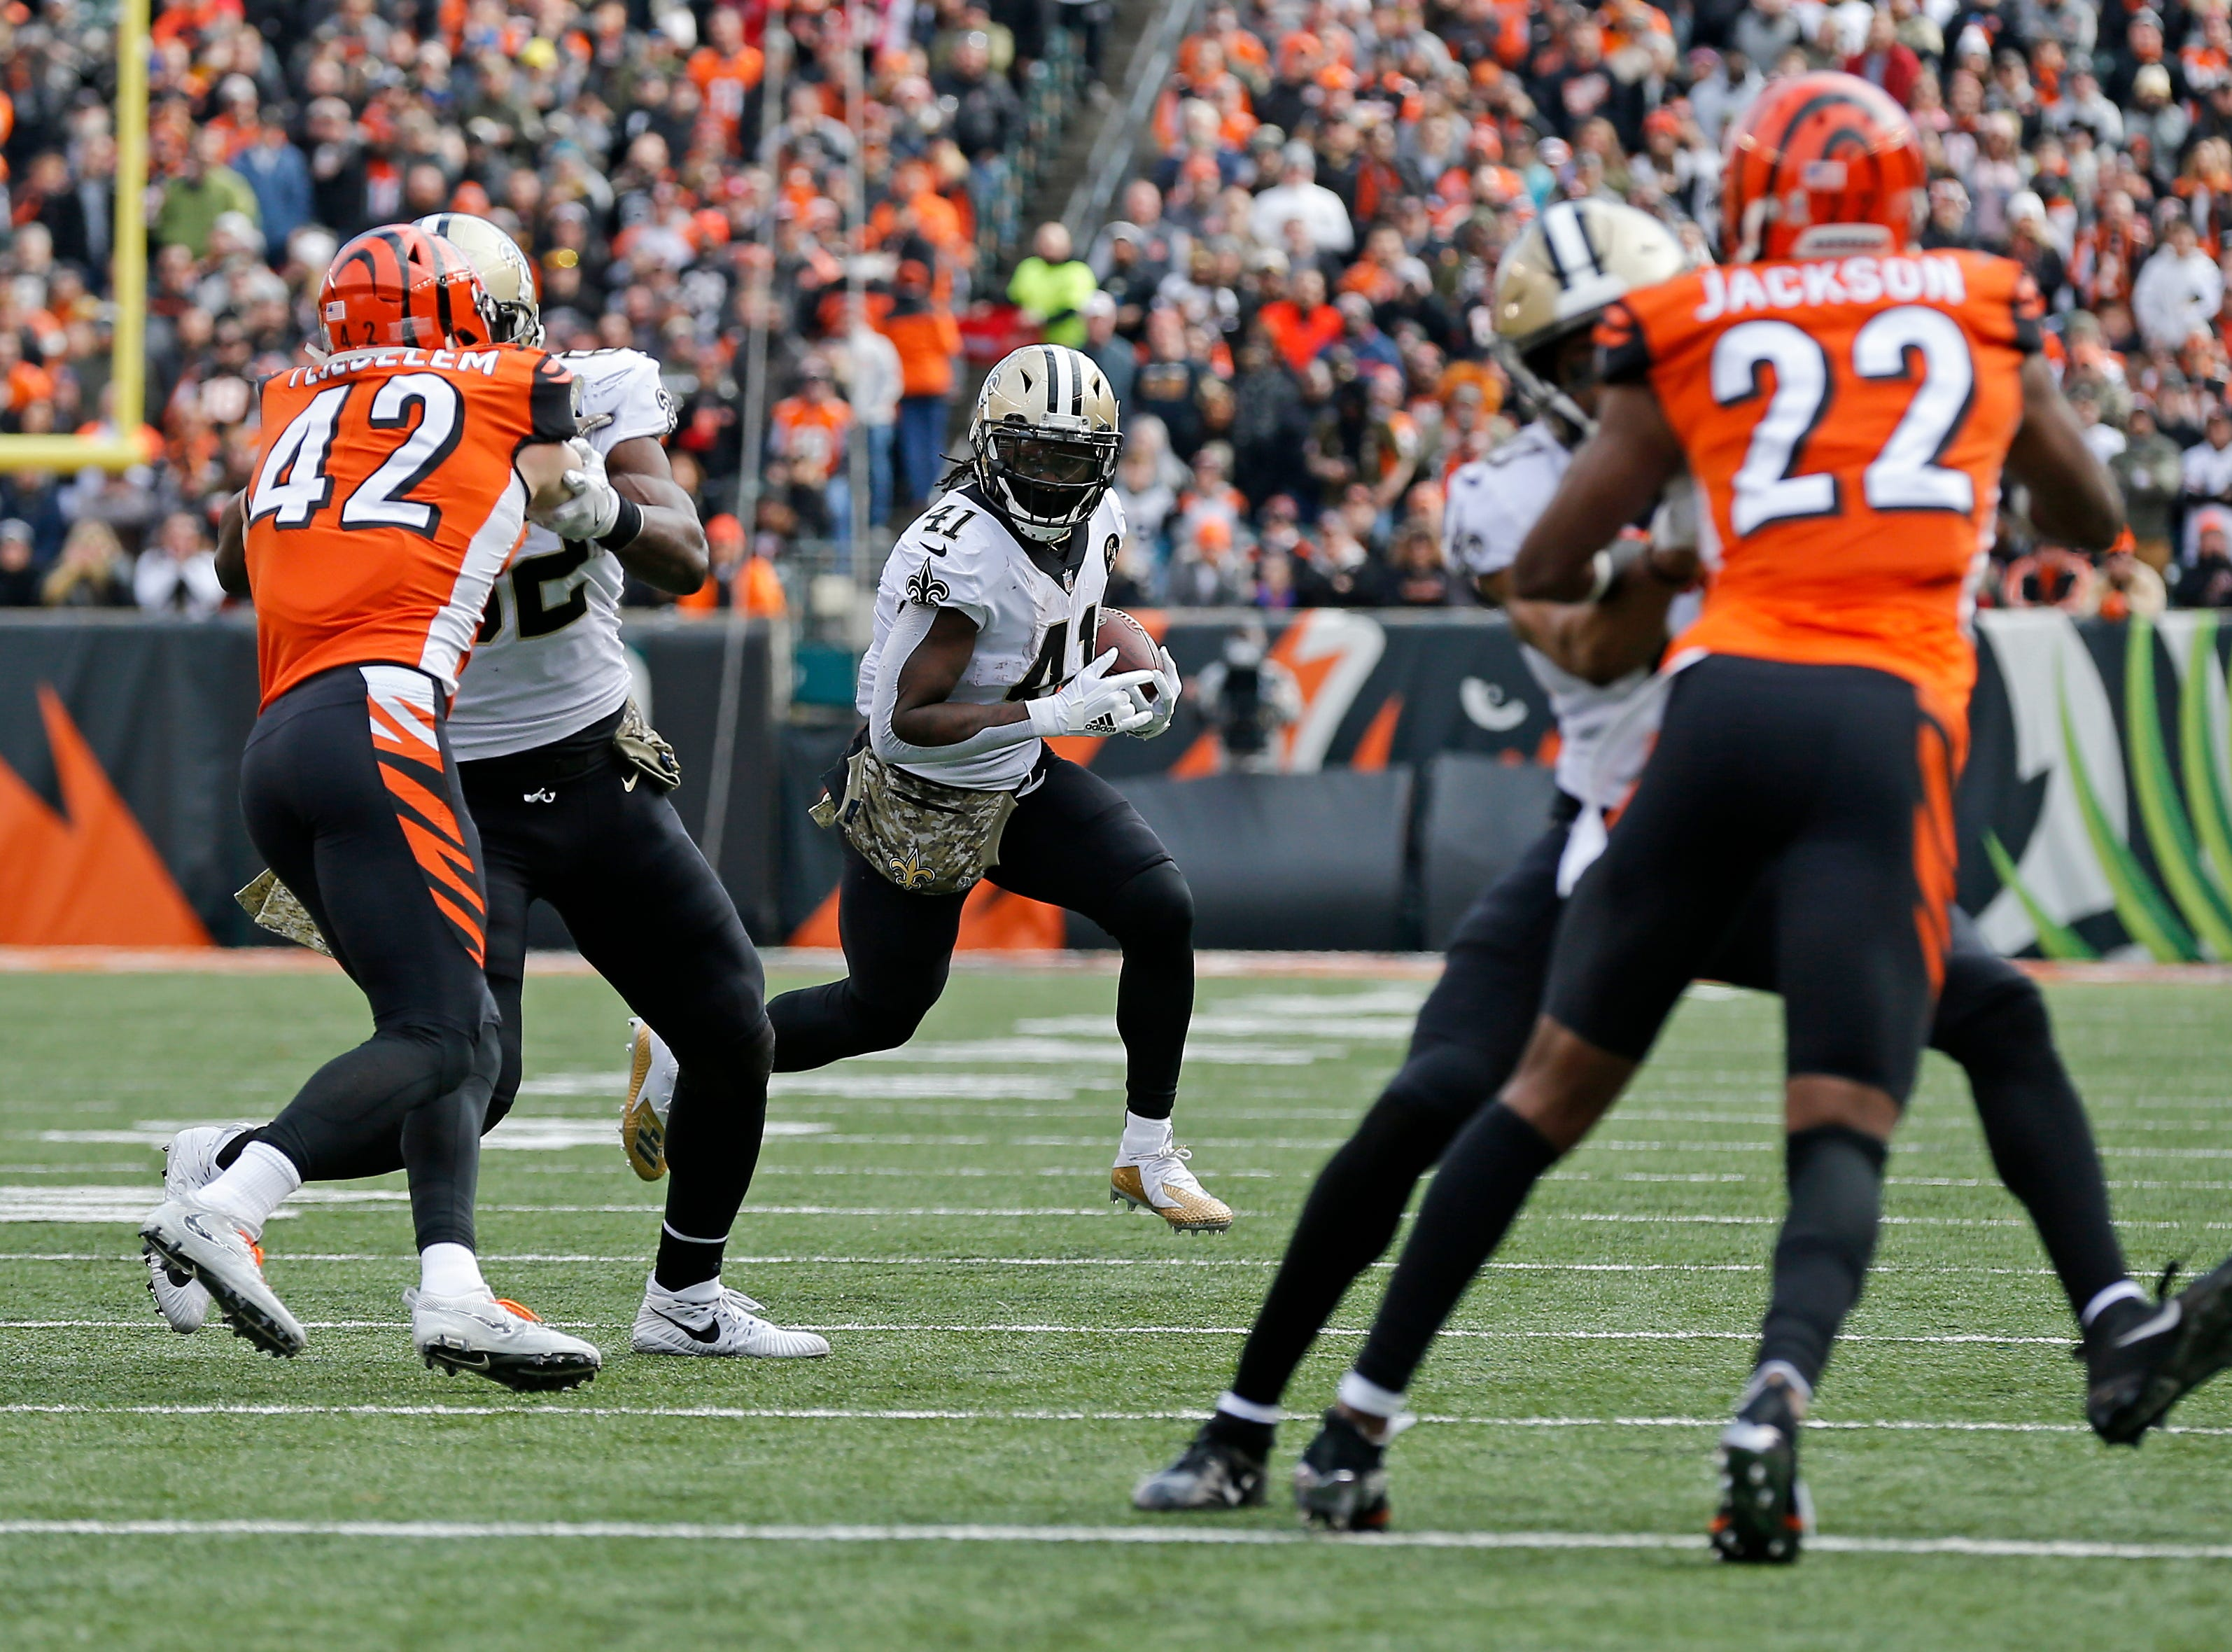 New Orleans Saints running back Alvin Kamara (41) looks for a hole as he makes a carry in the second quarter of the NFL Week 10 game between the Cincinnati Bengals and the New Orleans Saints at Paul Brown Stadium in downtown Cincinnati on Sunday, Nov. 11, 2018. The Saints led 35-7 at halftime.